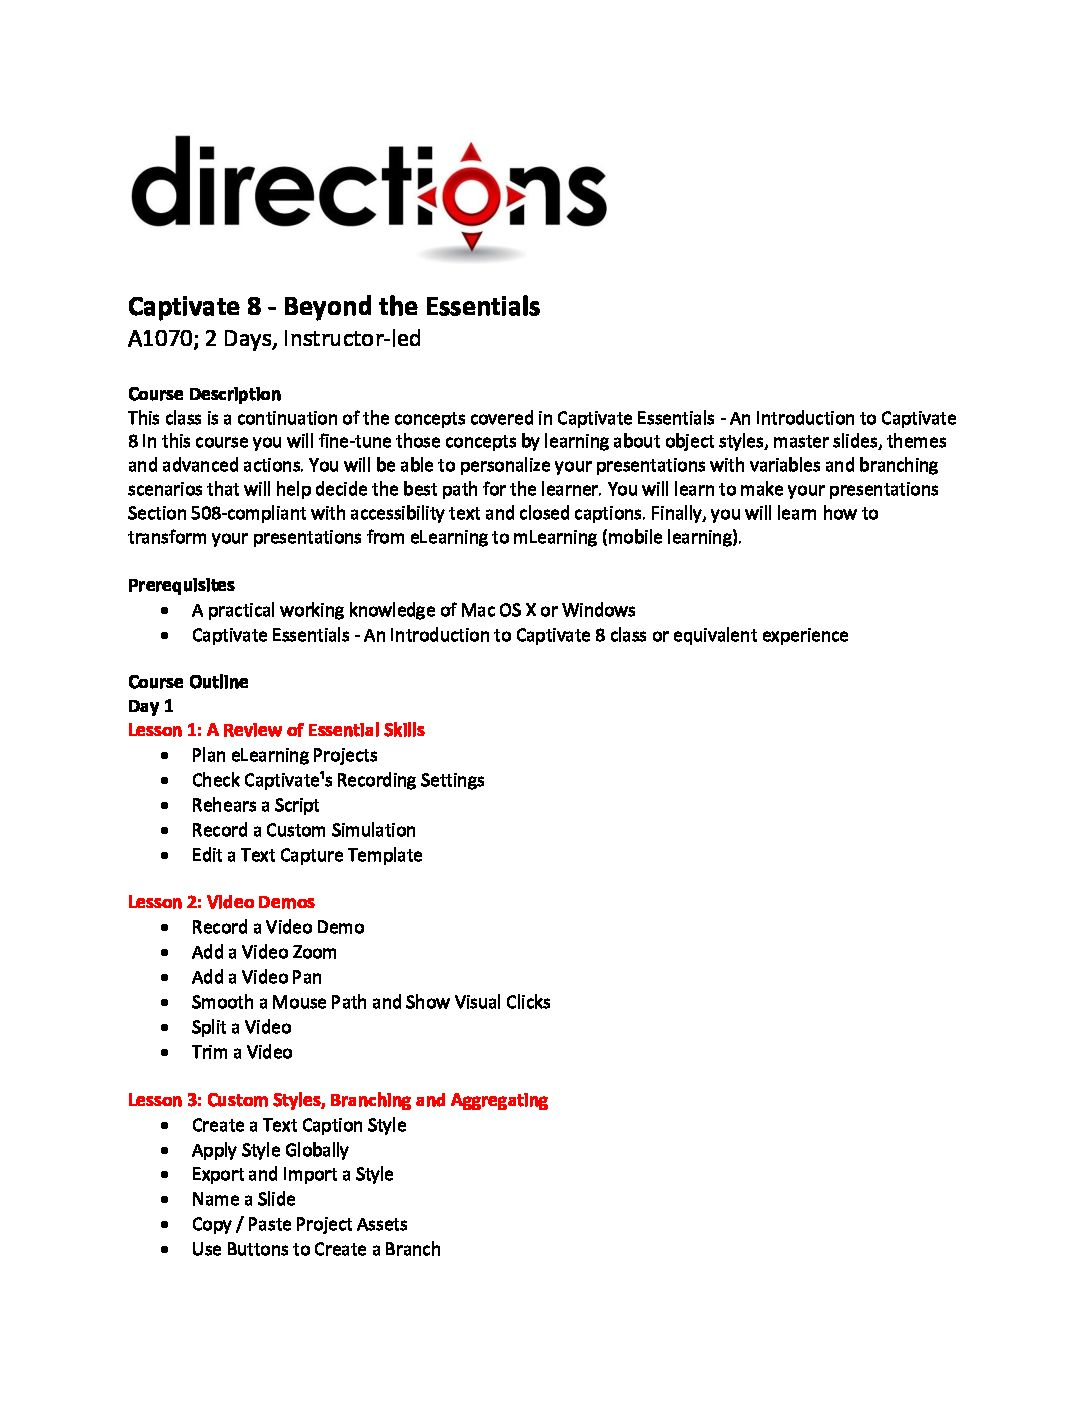 Latest News | Directions Training | Online Learning